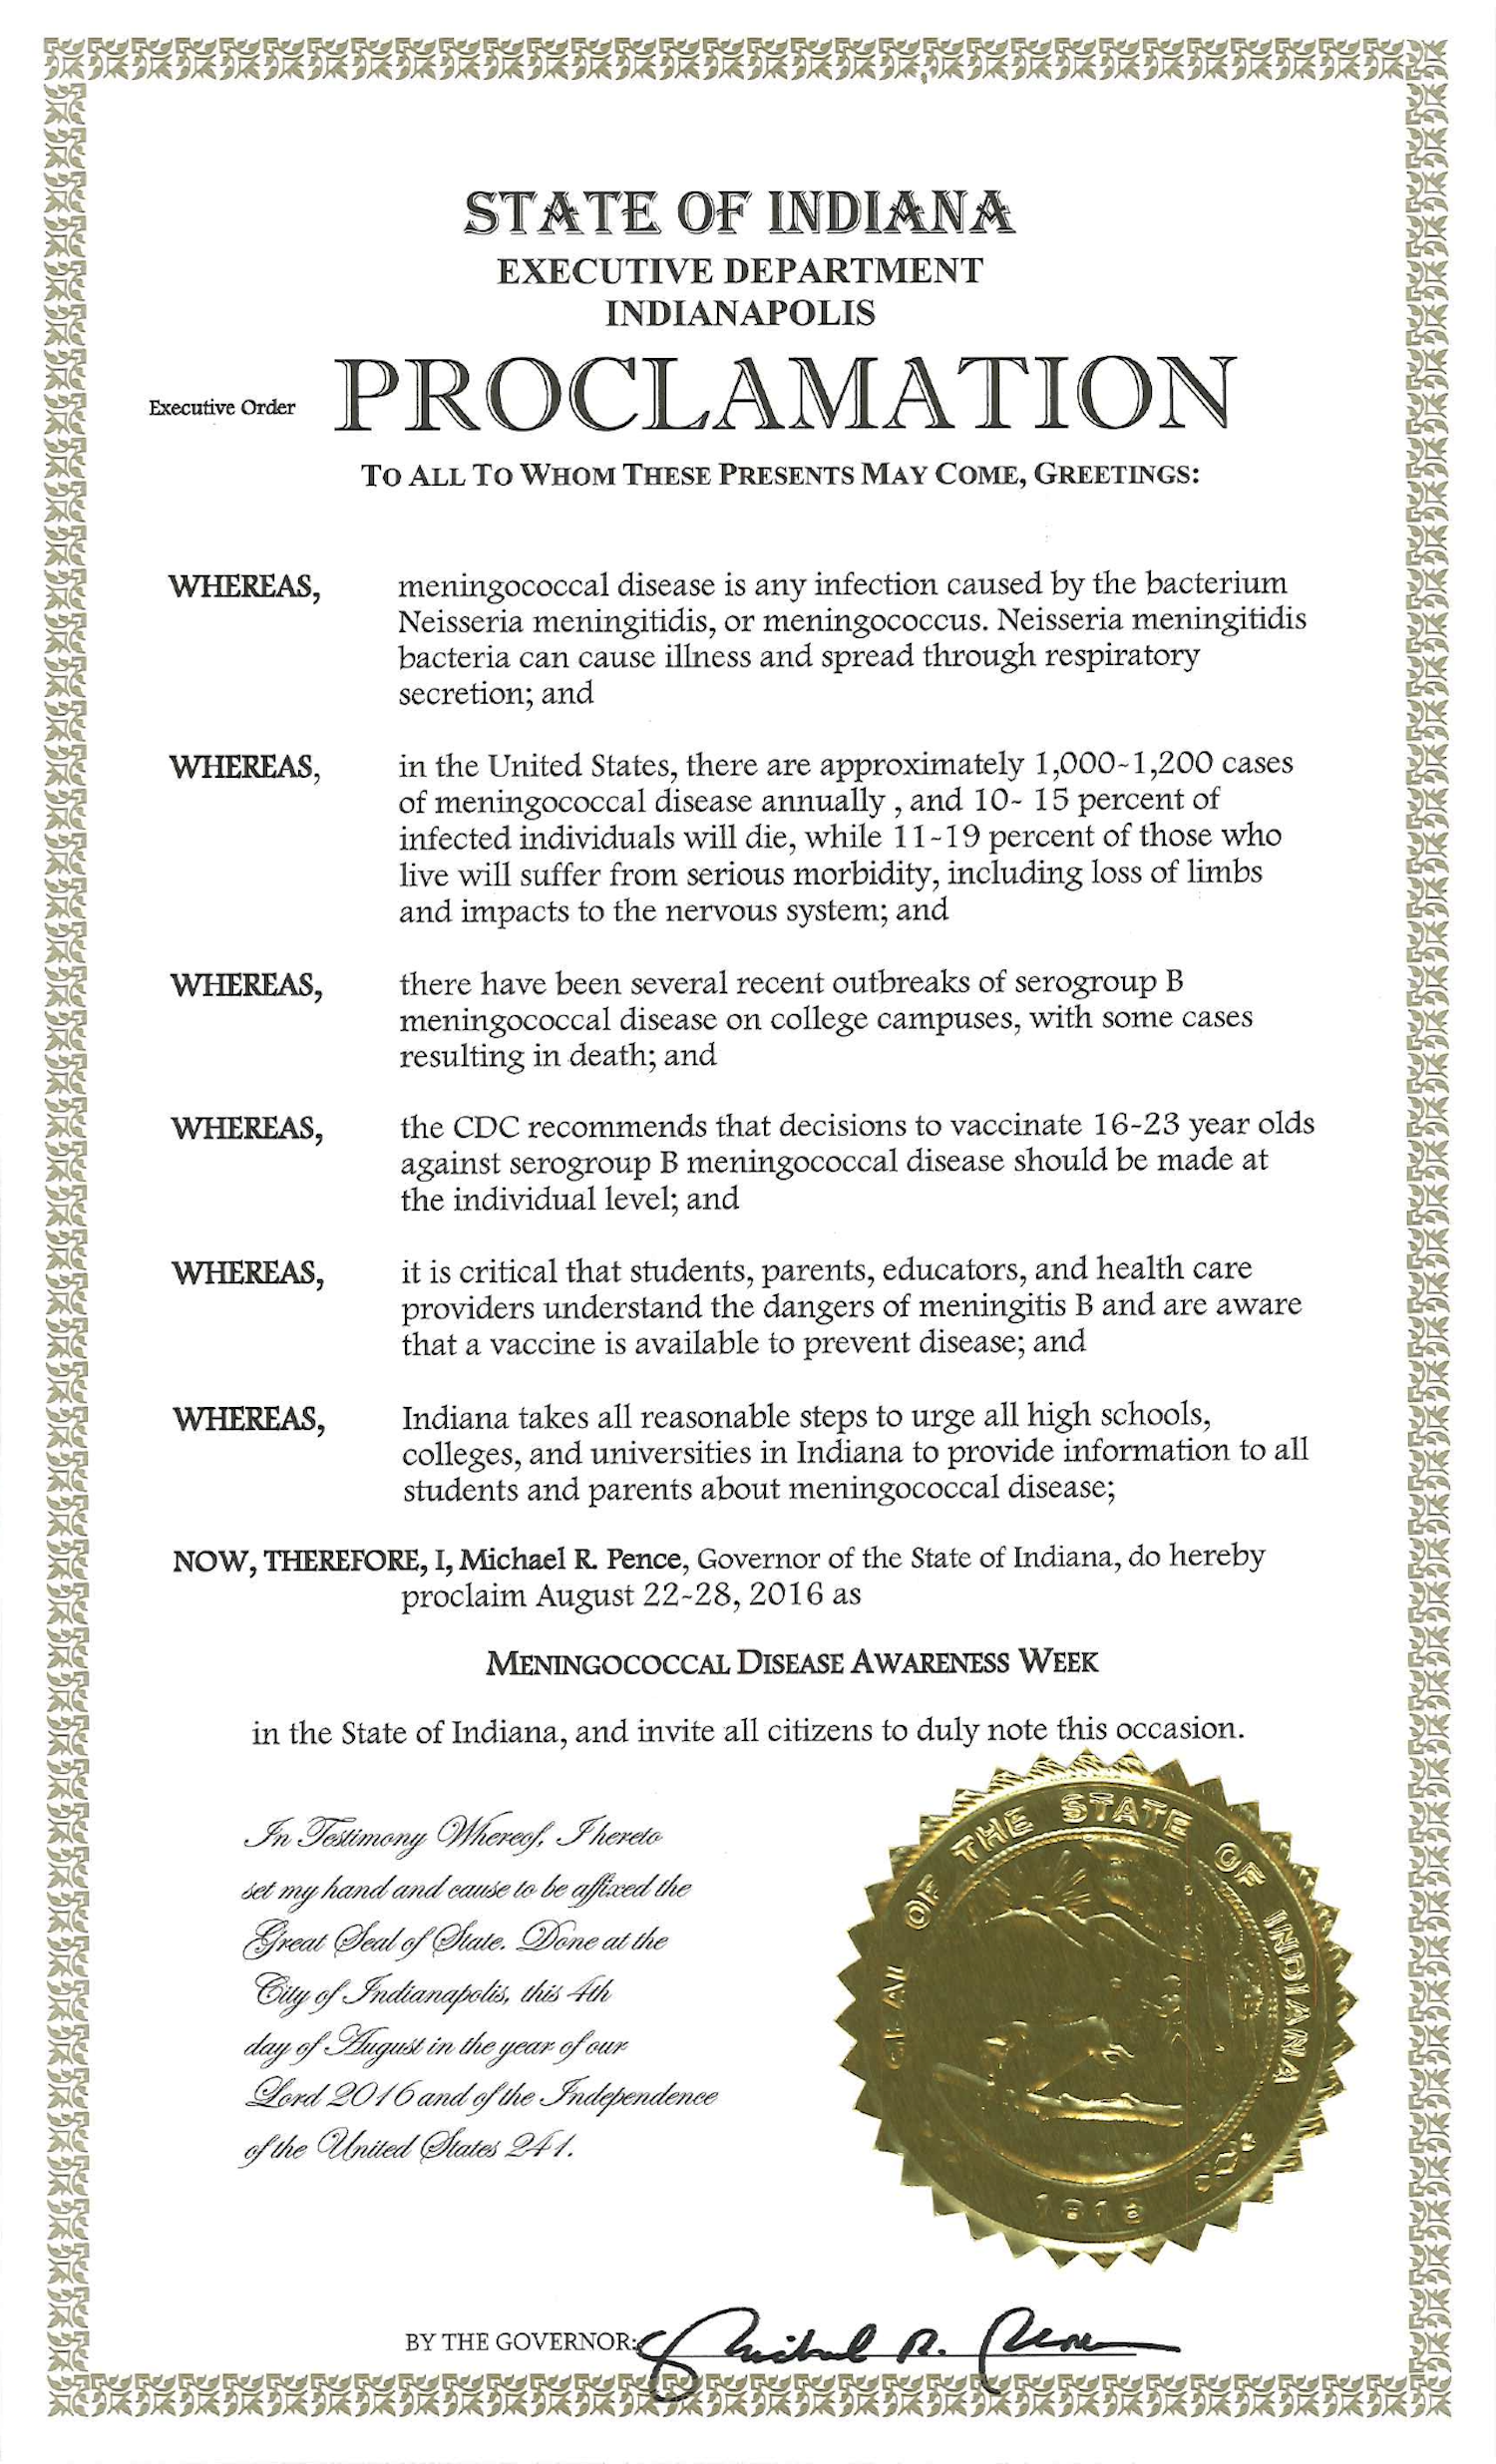 Proclamation_-Meningococcal-DISEASE-AWARENESS-WEEK-822-828-1.png